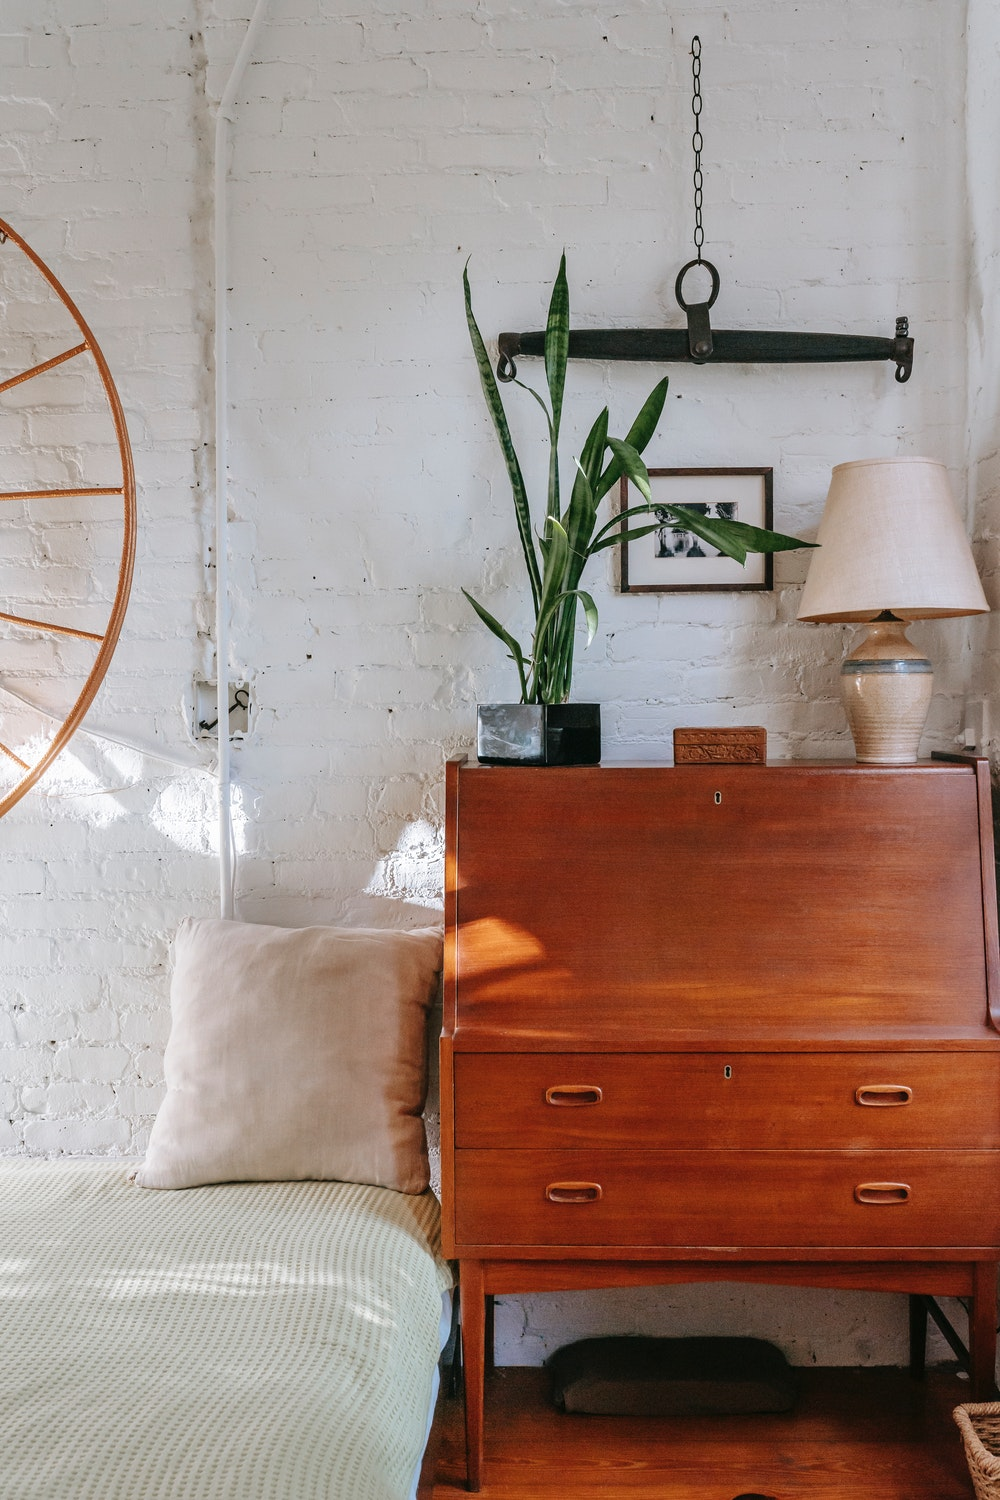 Quirky Ways to Repurpose Your Old Possessions